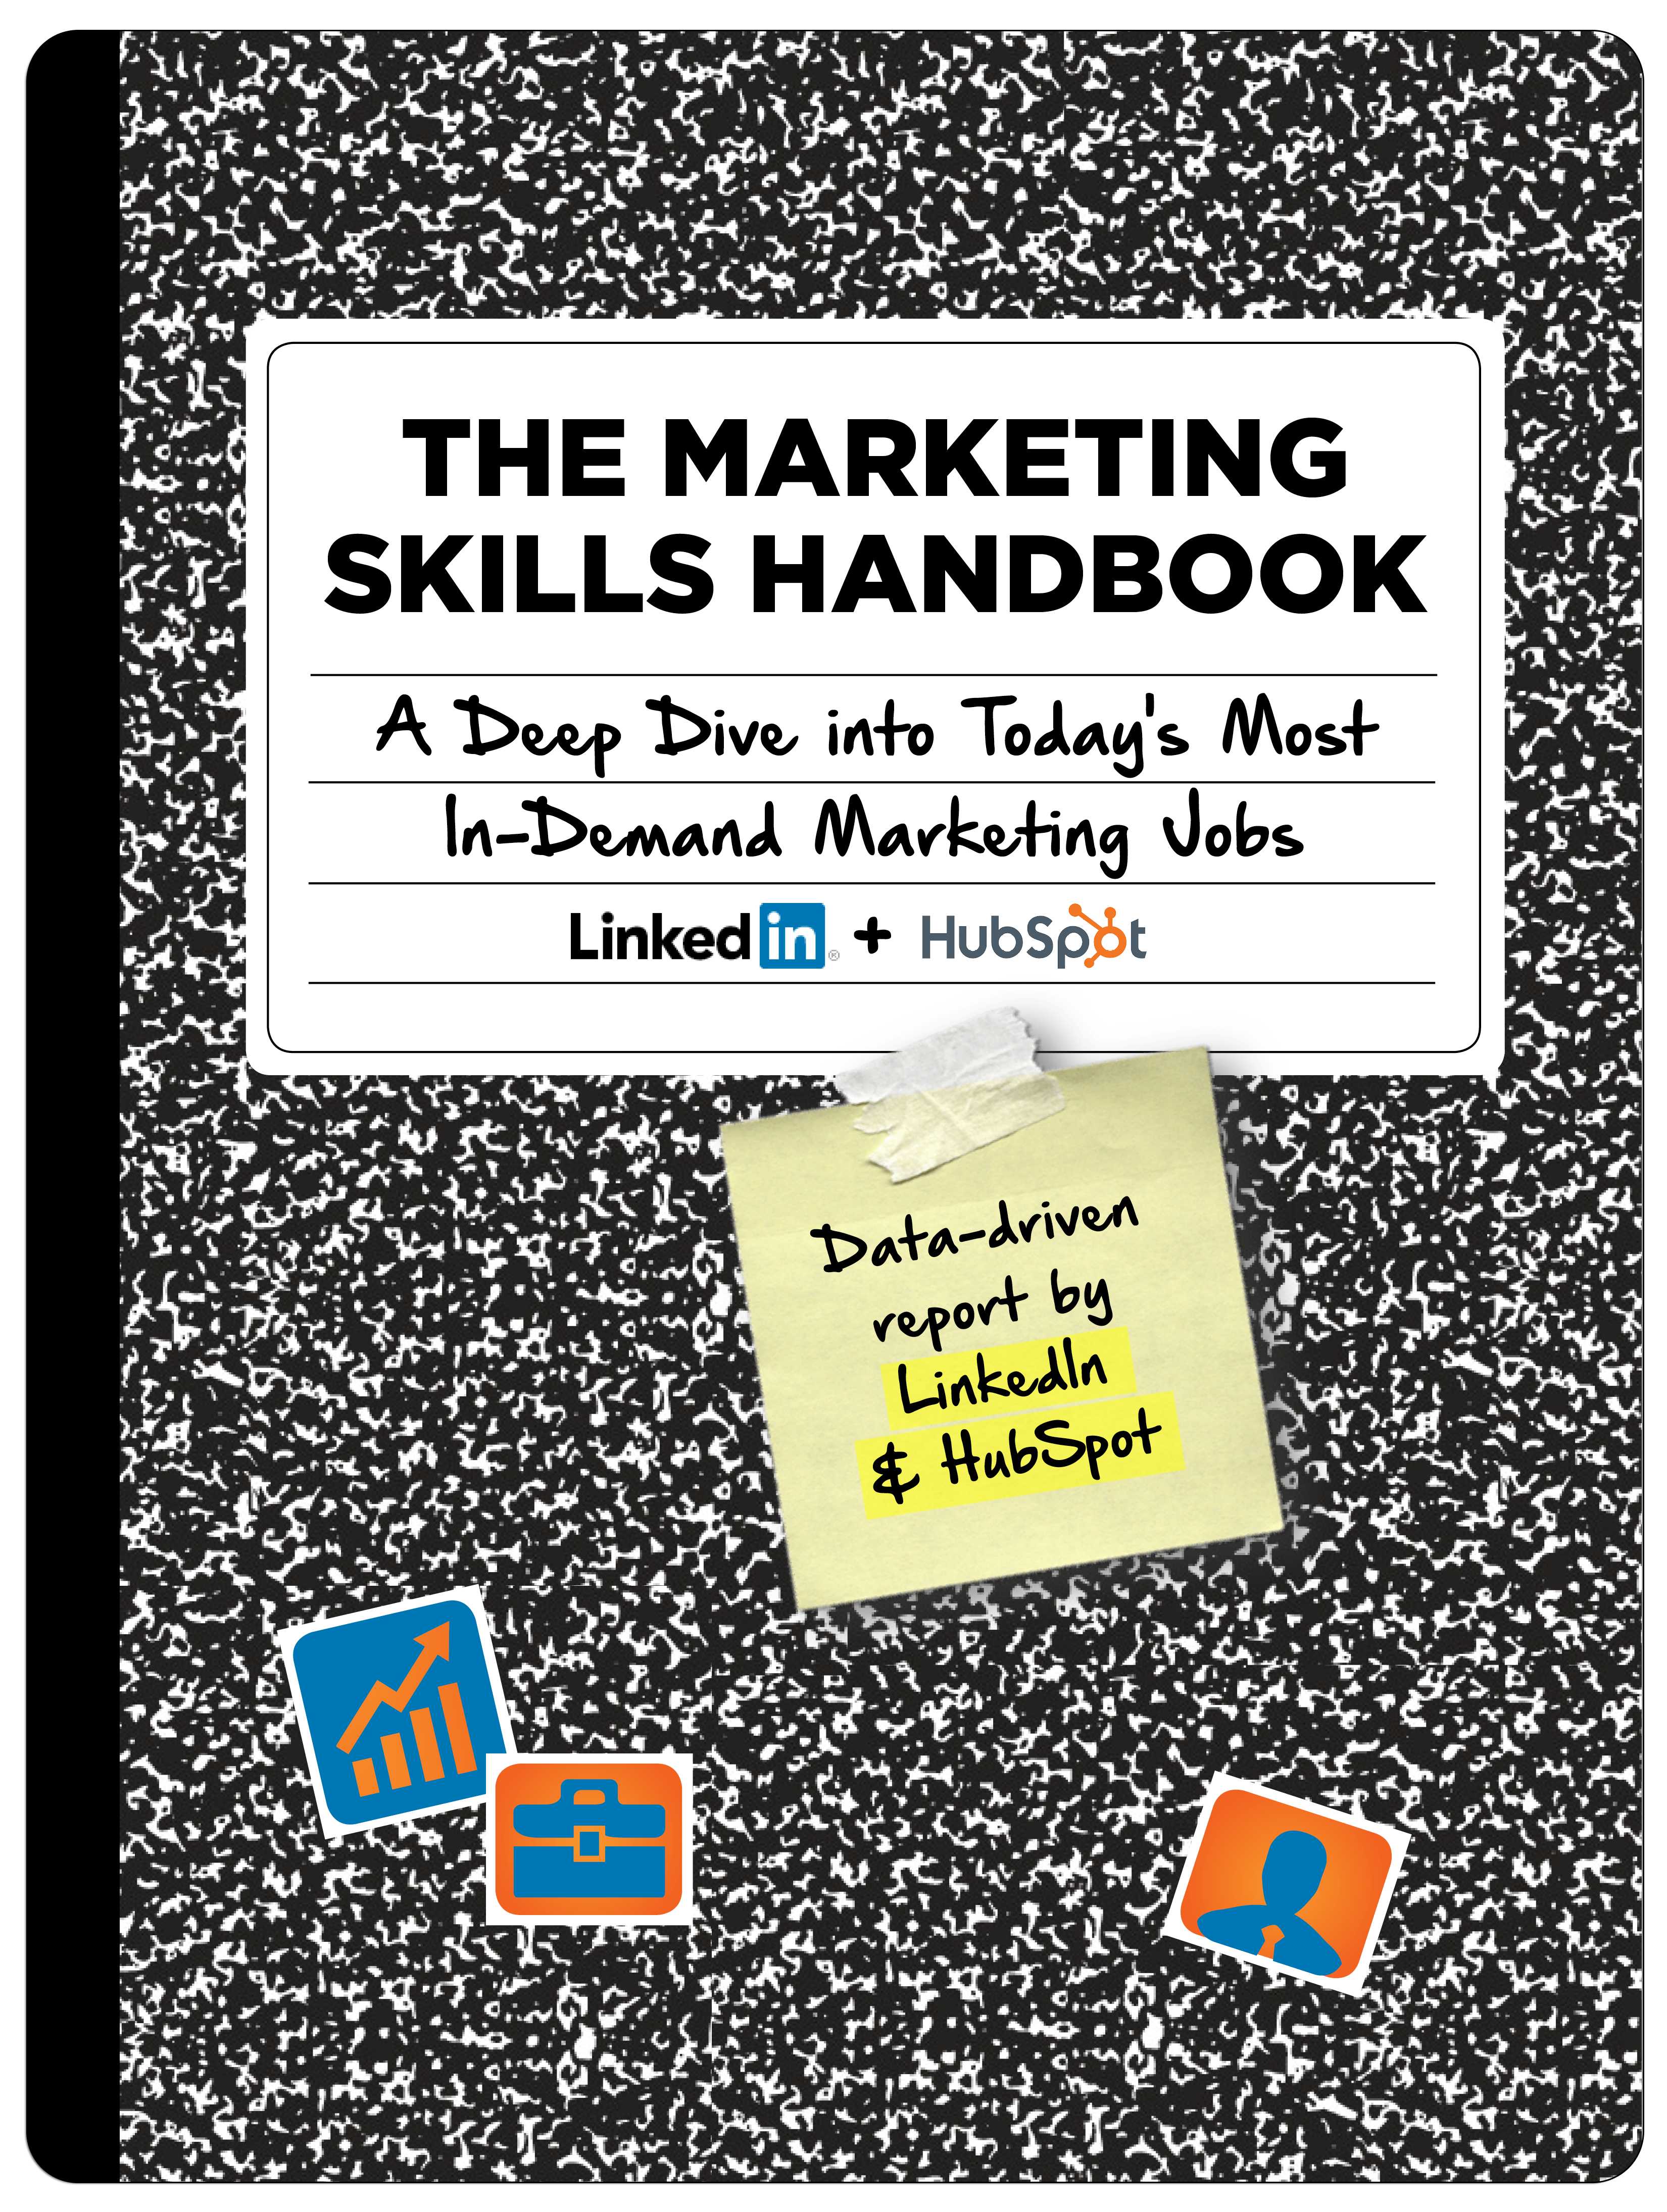 The Marketing Skills Handbook